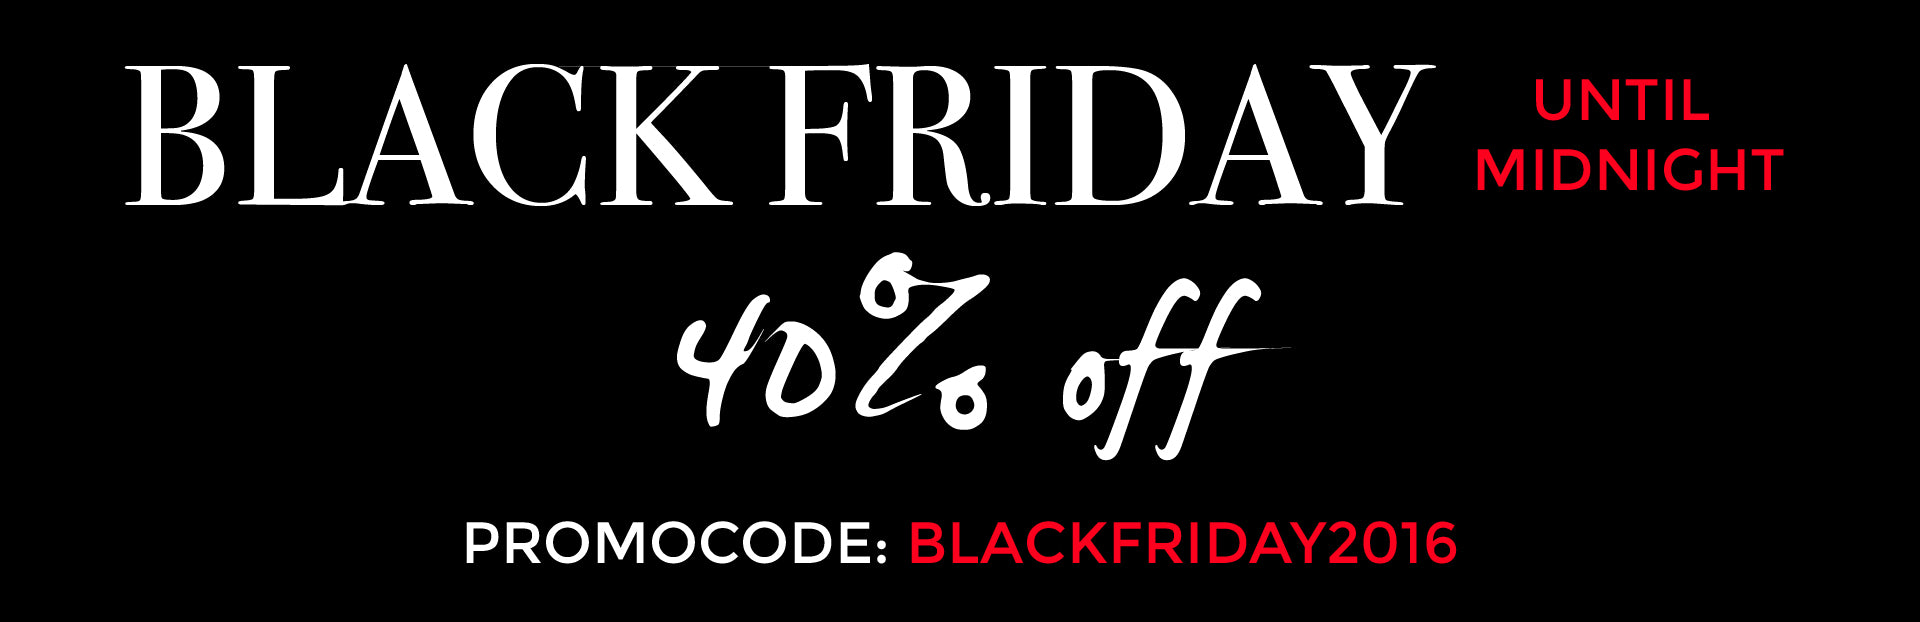 BLACK FRIDAY SALE 40% OFF TODAY